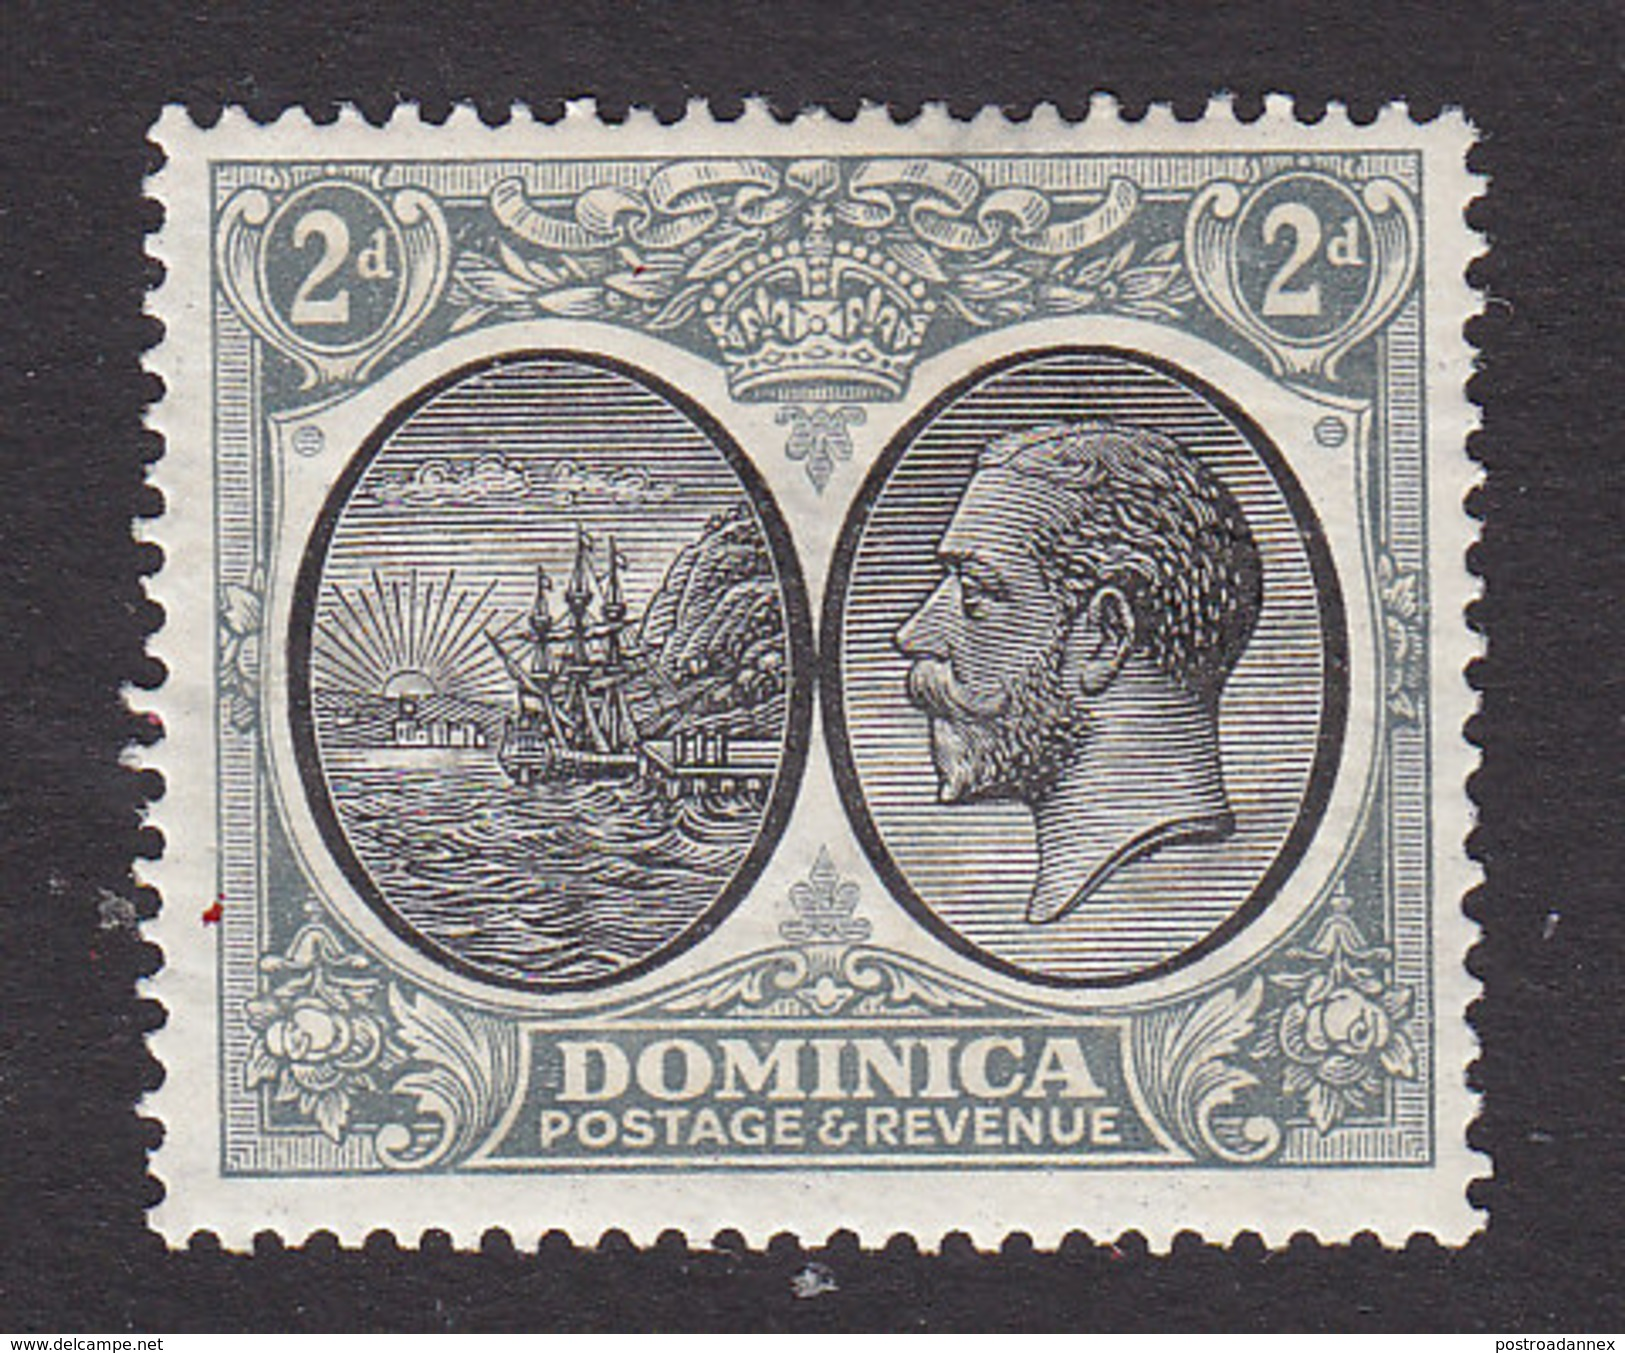 Dominica, Scott #70, Mint Hinged, Seal Of The Colony And George V, Issued 1923 - Dominica (...-1978)